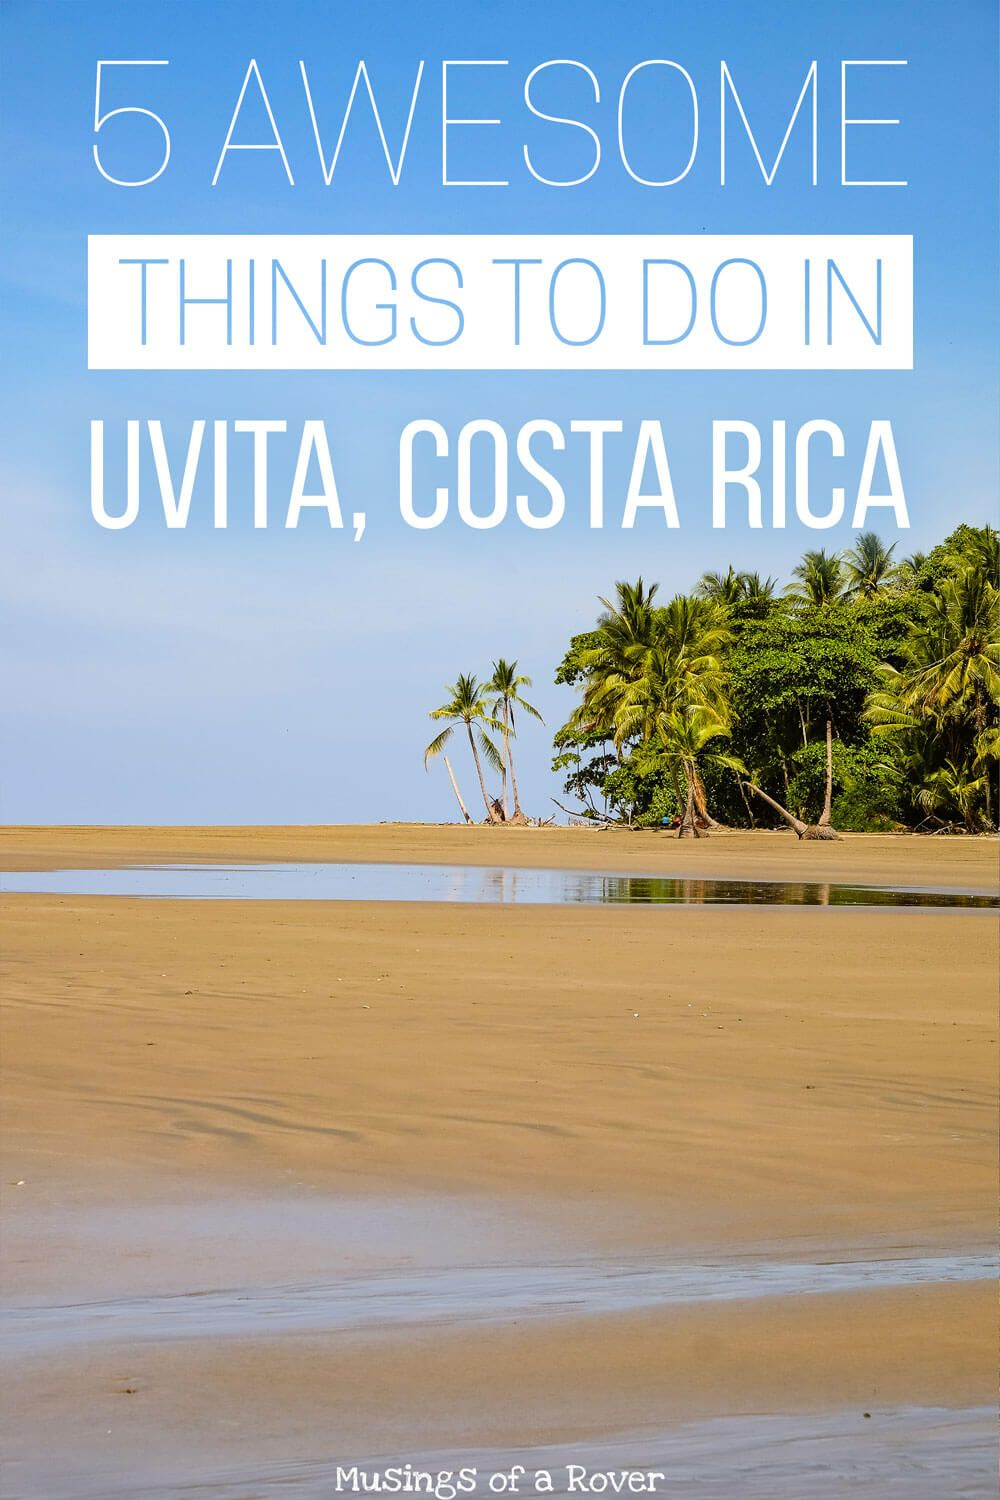 Interested in visiting Uvita, Costa Rica? Want to know about 5 things to do while you are there? Check out this post for the details on the whale's tail, waterfalls, snorkeling, sunsets, and surfing.